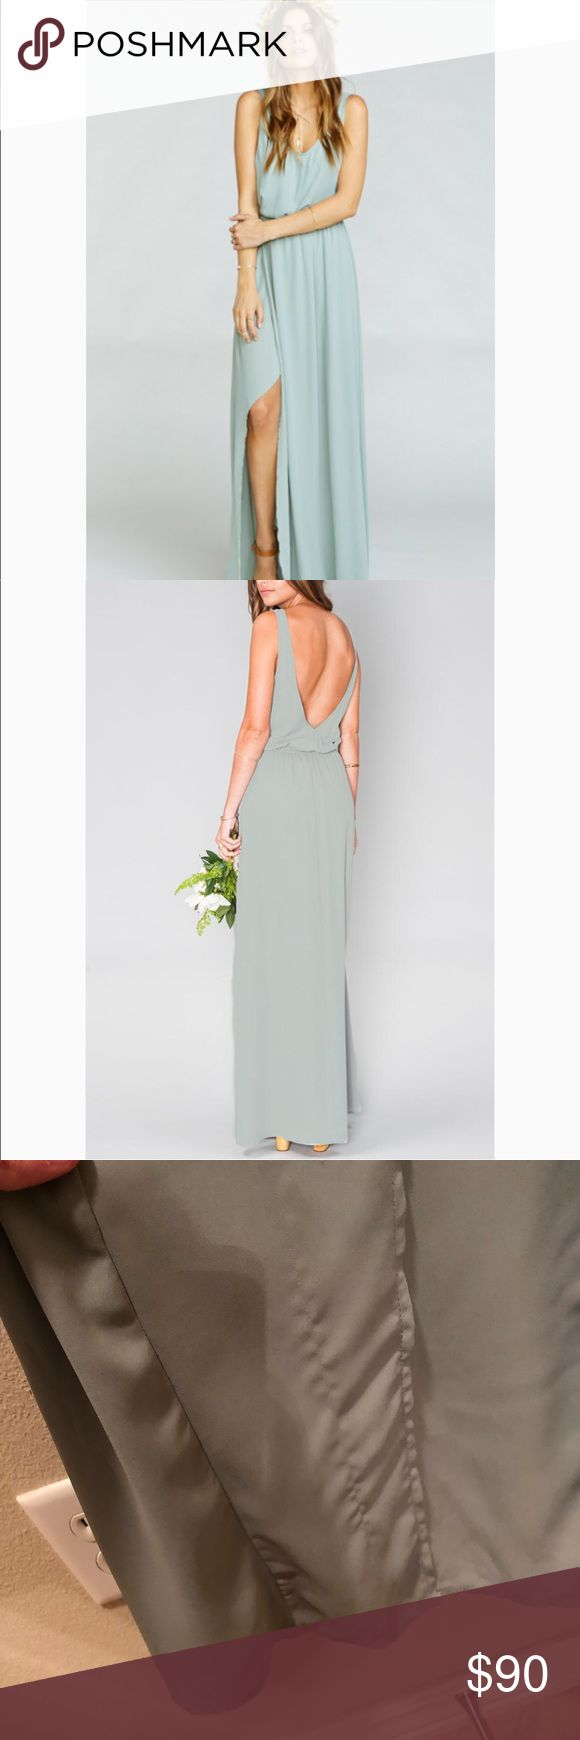 SMYM Kendall maxi in silver sage crisp SMYM Kendall maxi in silver sage crisp size small. Has a run near the bottom, but not really noticeable once on. See photo. This is part of MuMu's bridal collection. Perfect for a bridesmaid or just for fun! No holds or trades Show Me Your MuMu Dresses Maxi